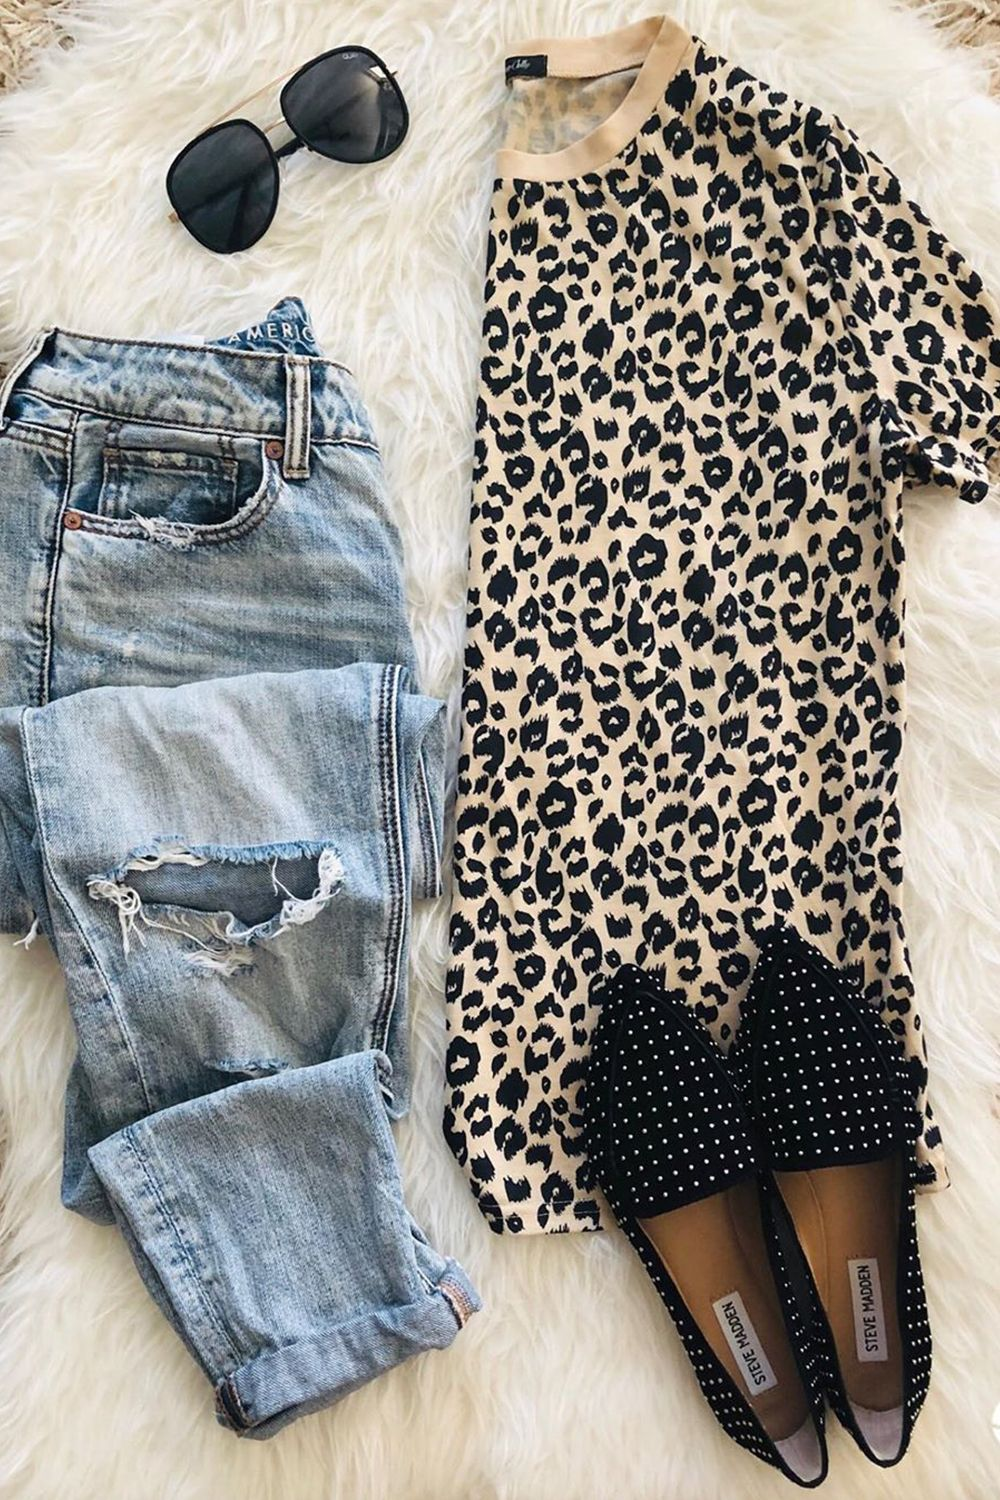 Leopard Print T Shirt Styling Tips Outfits Inspiration Women Fashion Street Wear Summer Casual Look